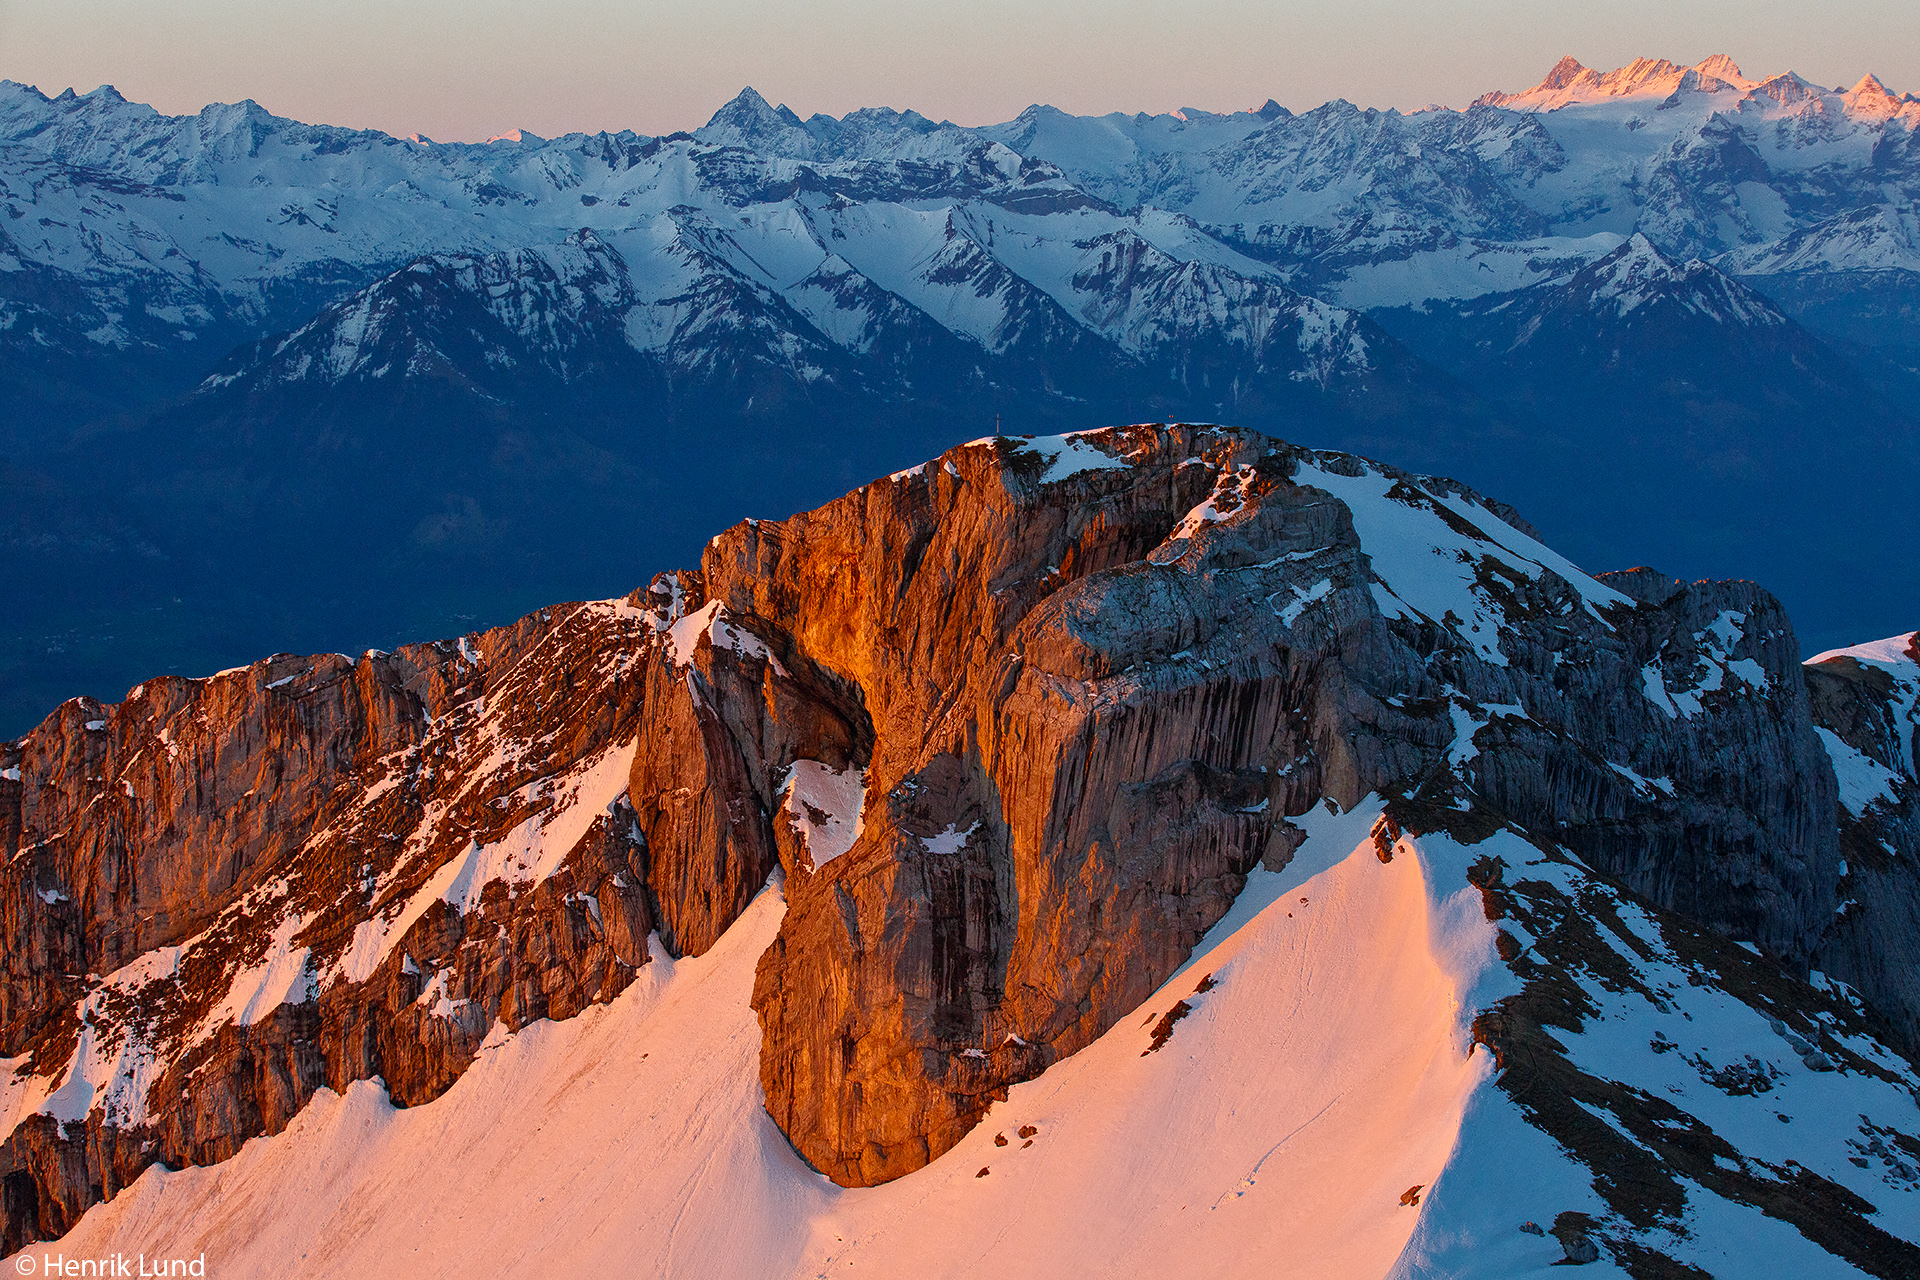 Sunset at the alps - view over Matthorn in the front and Jungfrau at the right. Mount Pilatus, Lucerne, Switzerland, Europe. April 2018.